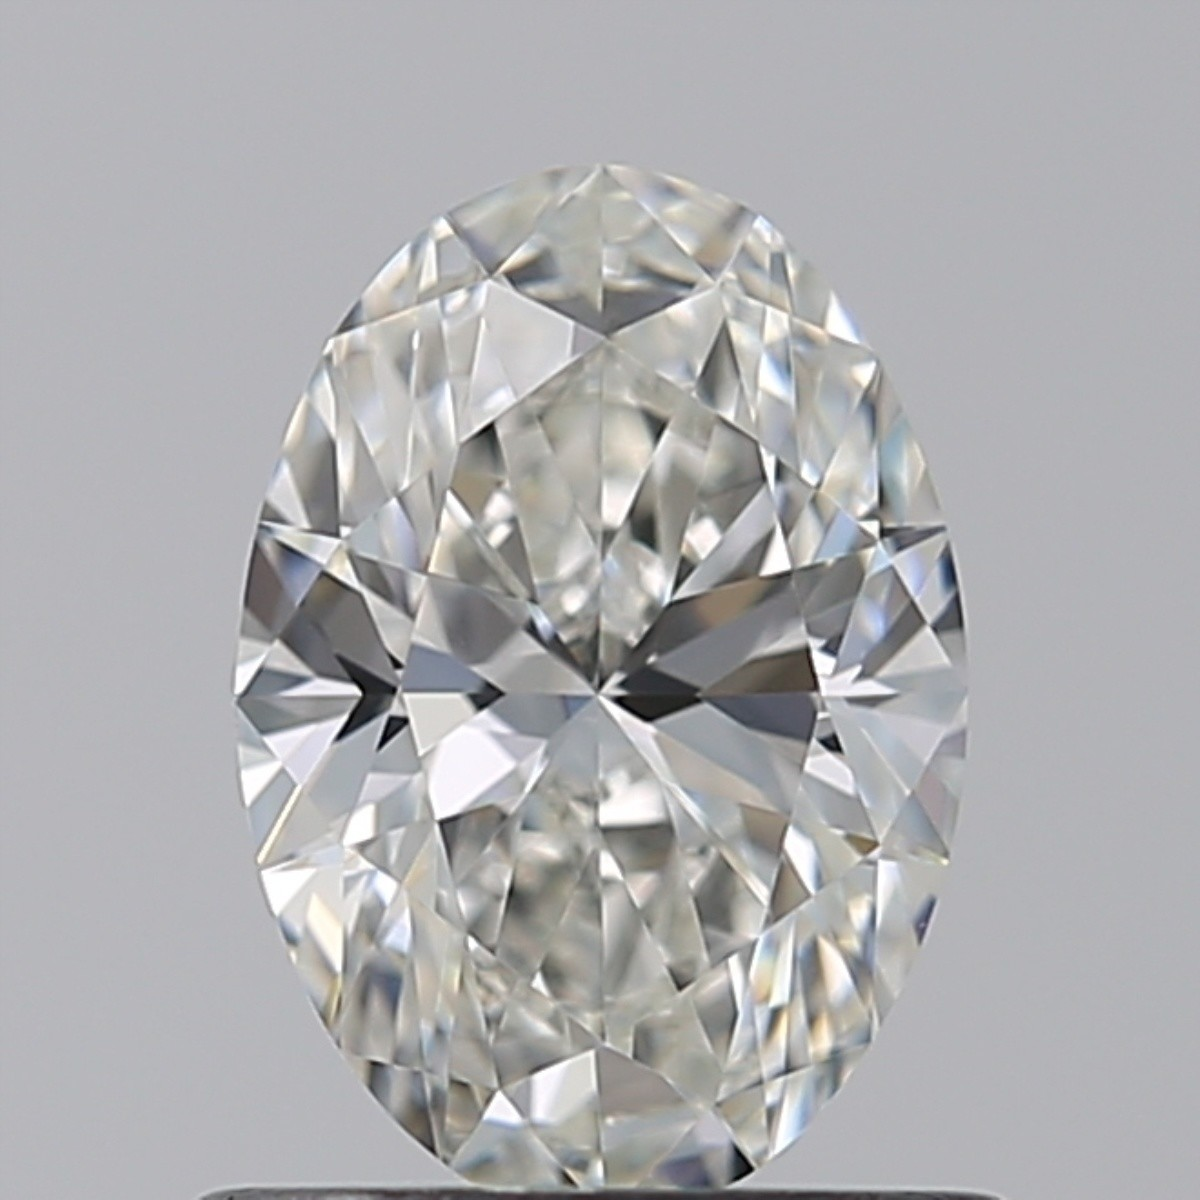 0.75 Carat Oval Diamond (G/VVS1)